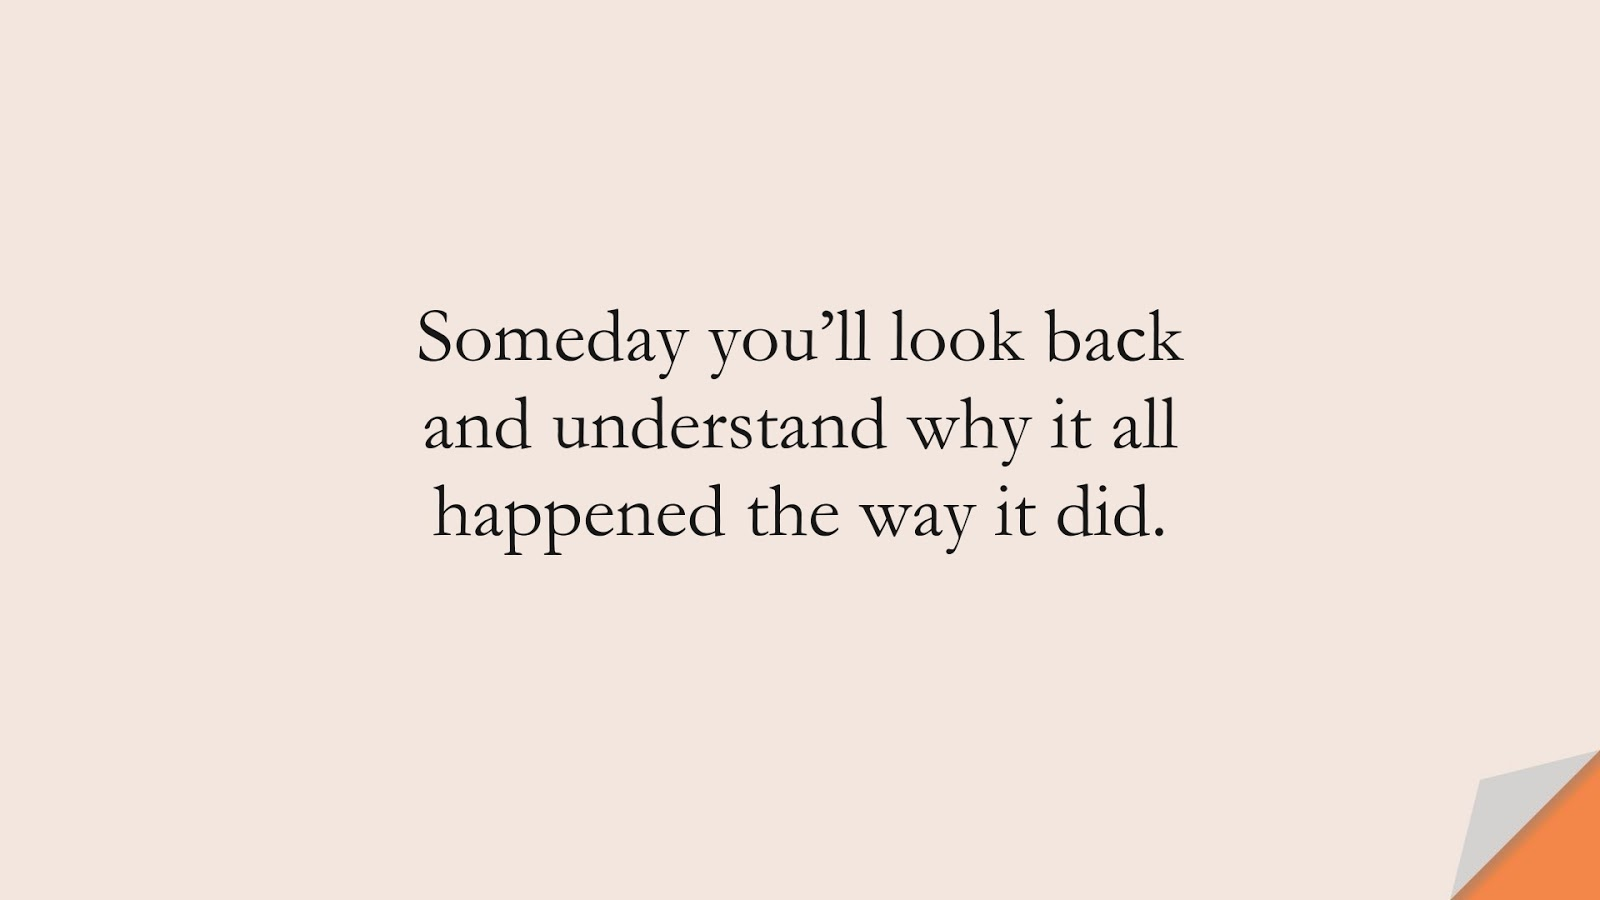 Someday you'll look back and understand why it all happened the way it did.FALSE